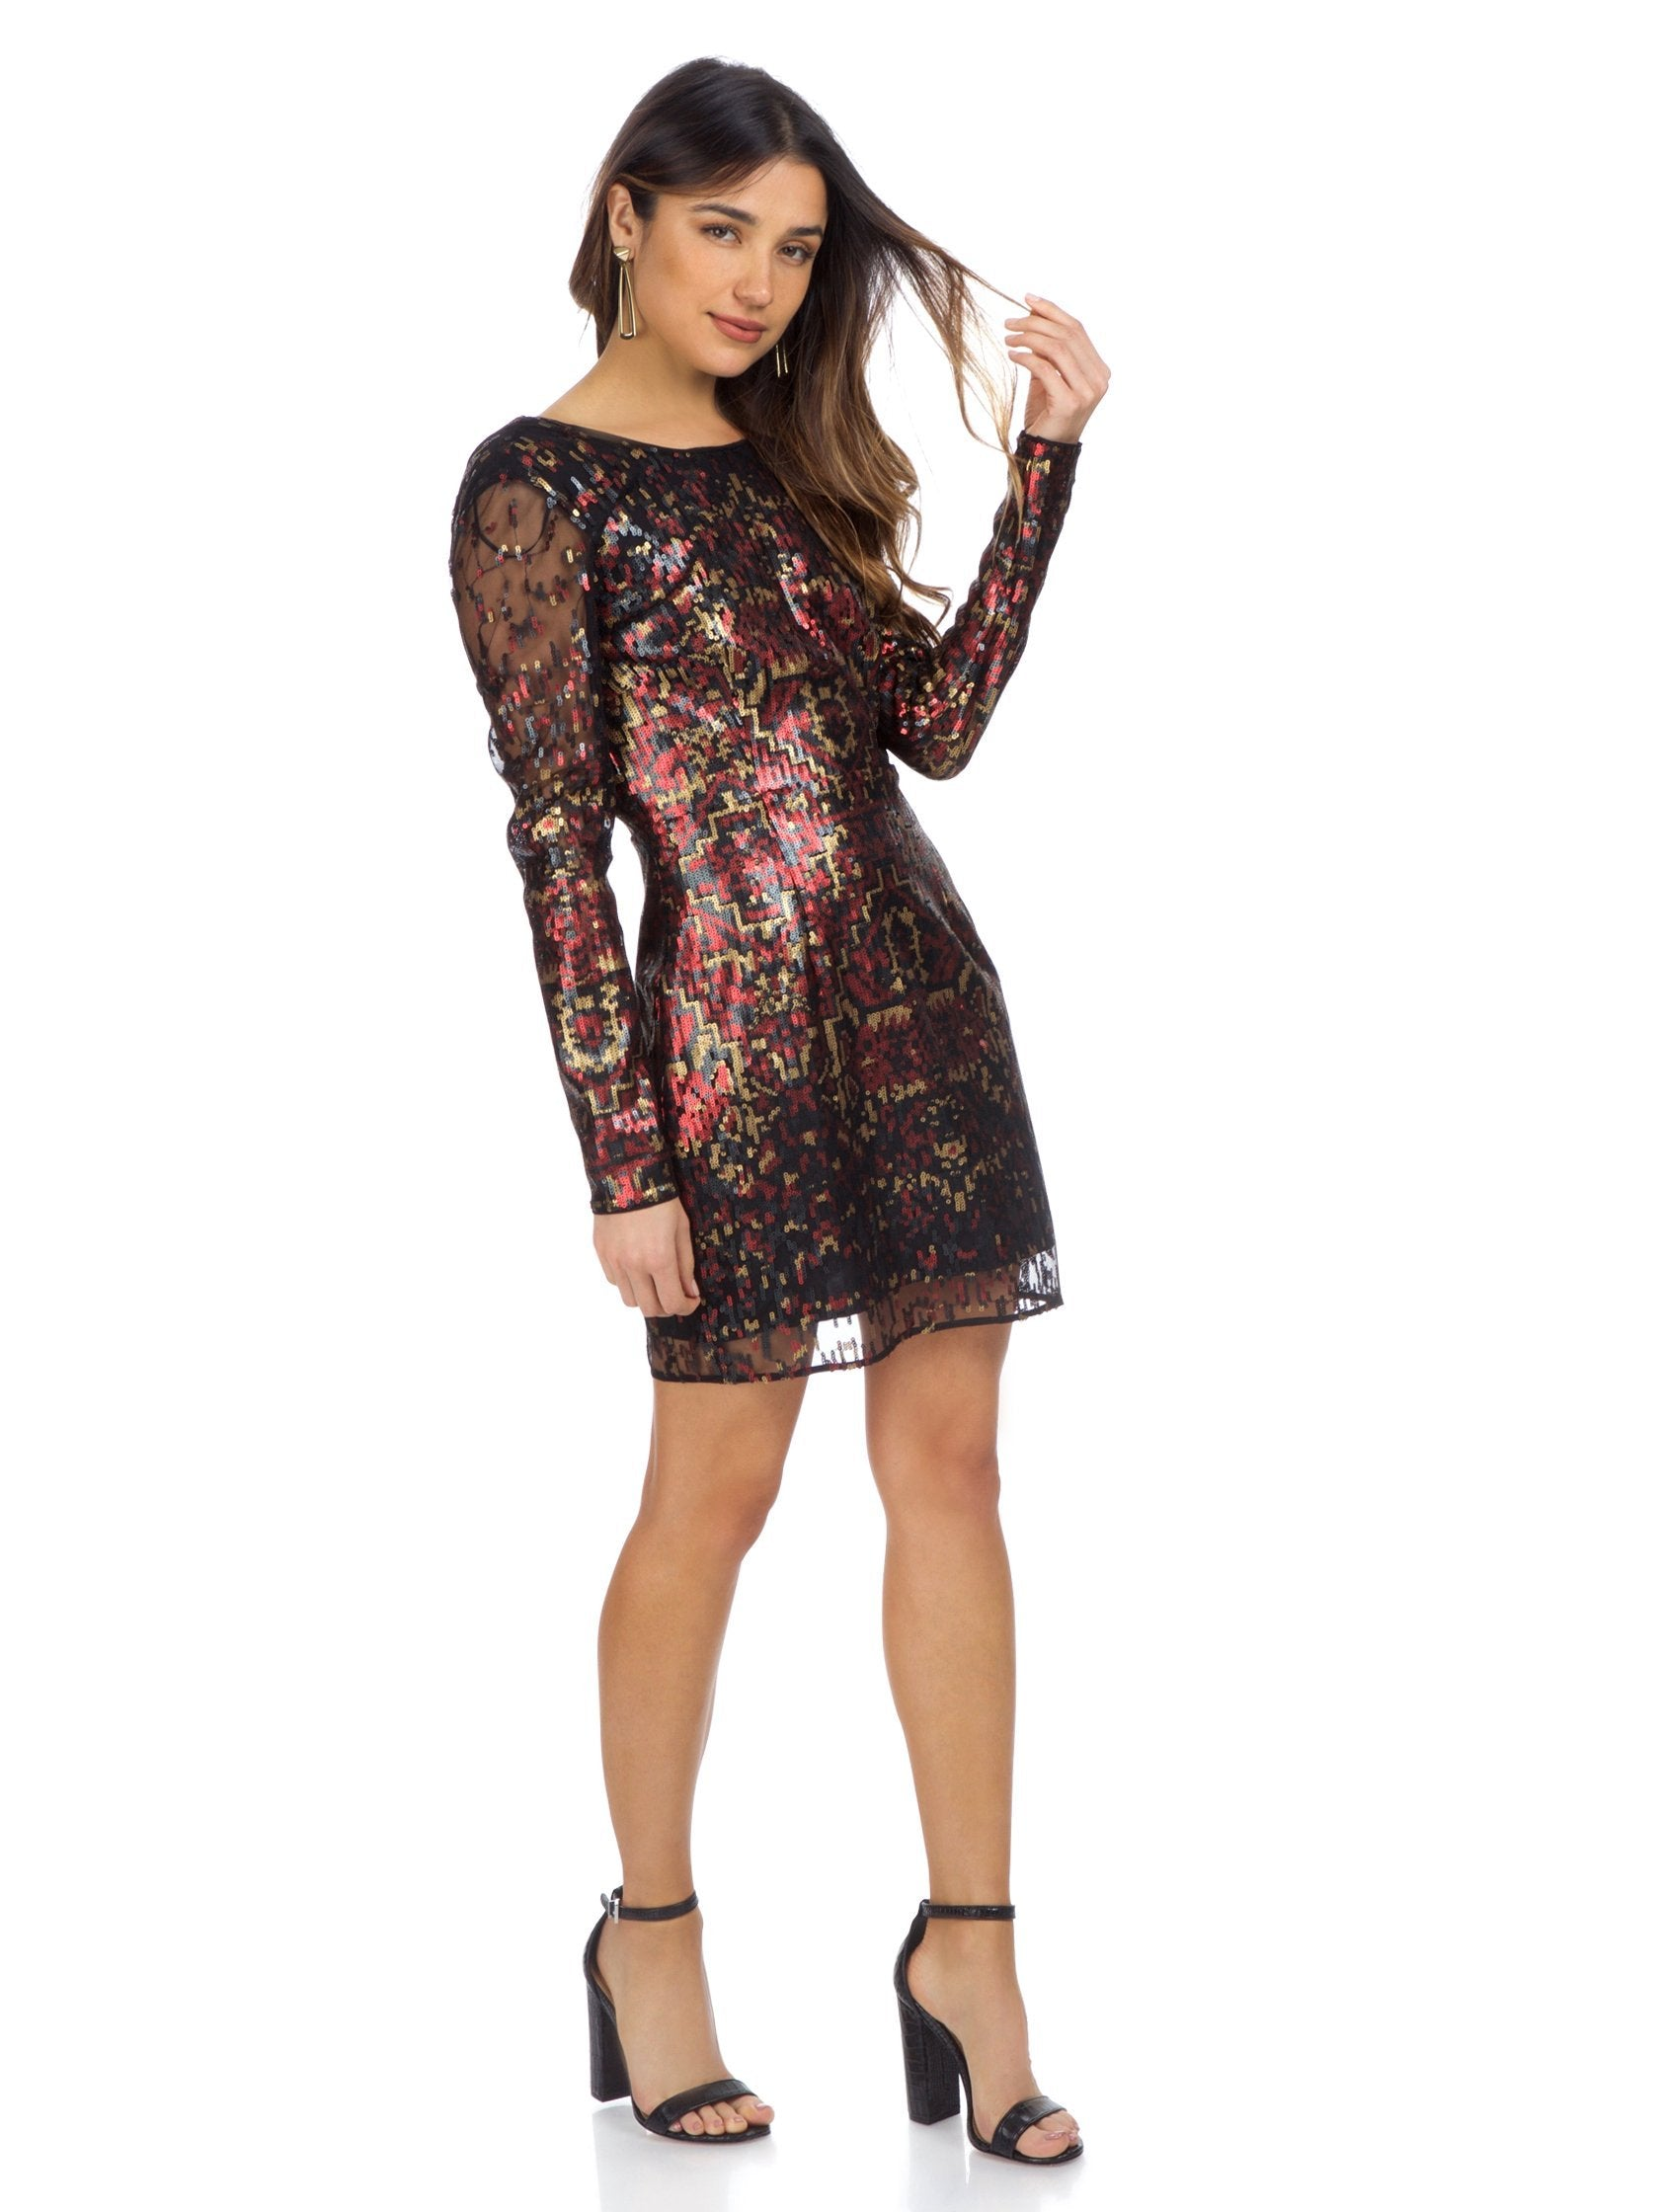 Woman wearing a dress rental from The Jetset Diaries called Tapestry Mini Dress